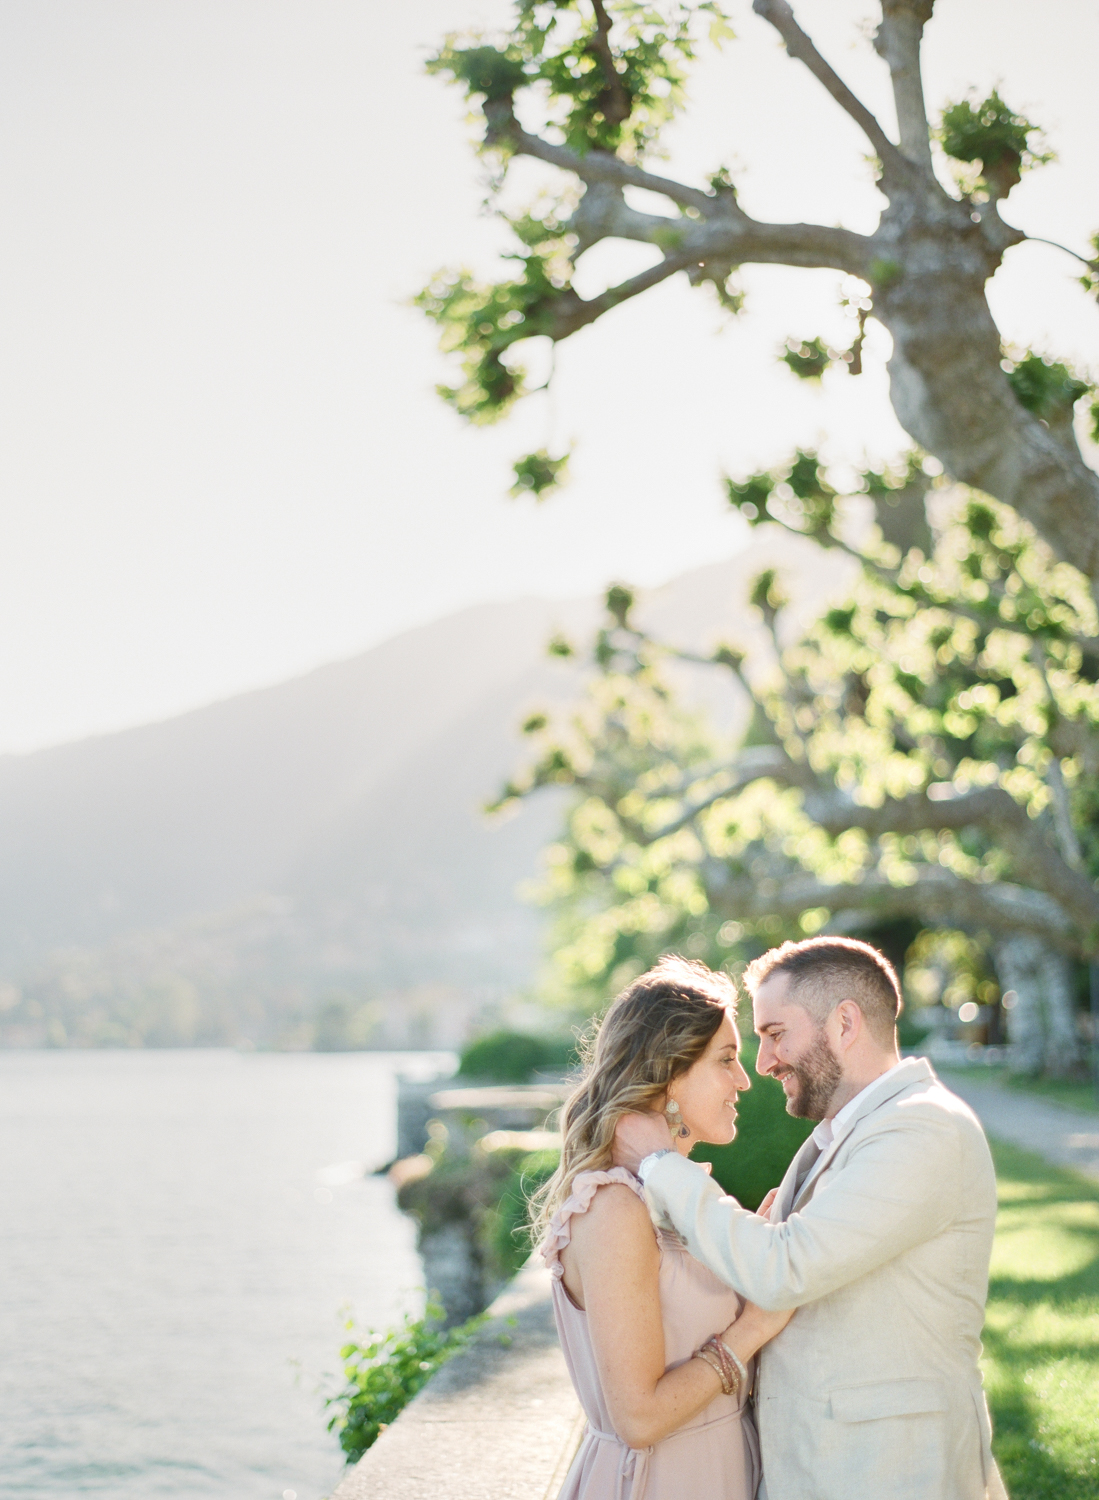 Lake_Como_wedding_photographer_nikol_bodnarova_lake_como_film_wedding_photographer_32.JPG